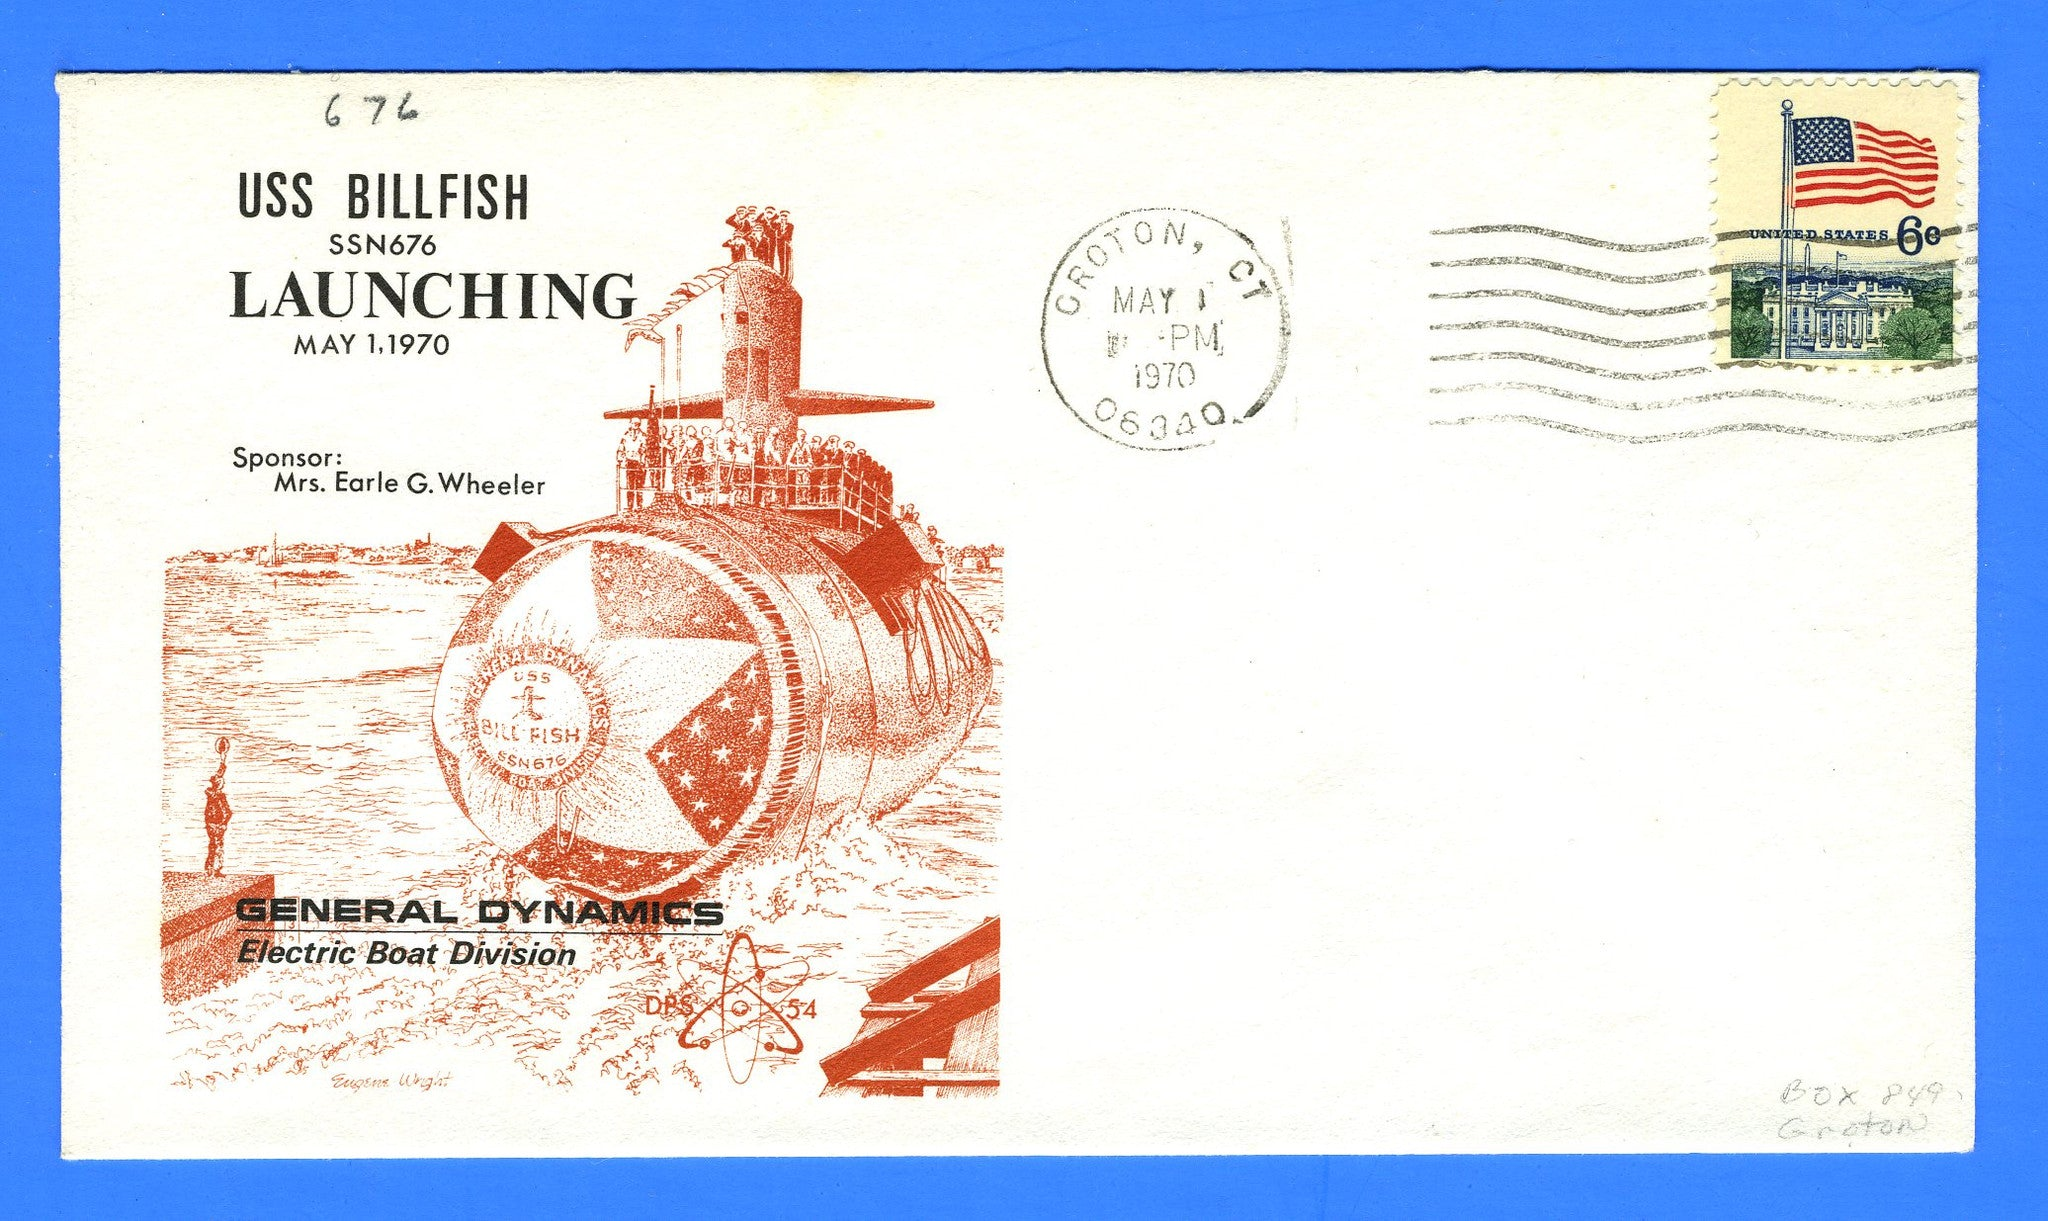 USS Billfish SSN-676 Launching May 1, 1970 - Cachet by DPS No. 54 (Dynamic Philatelic Society)